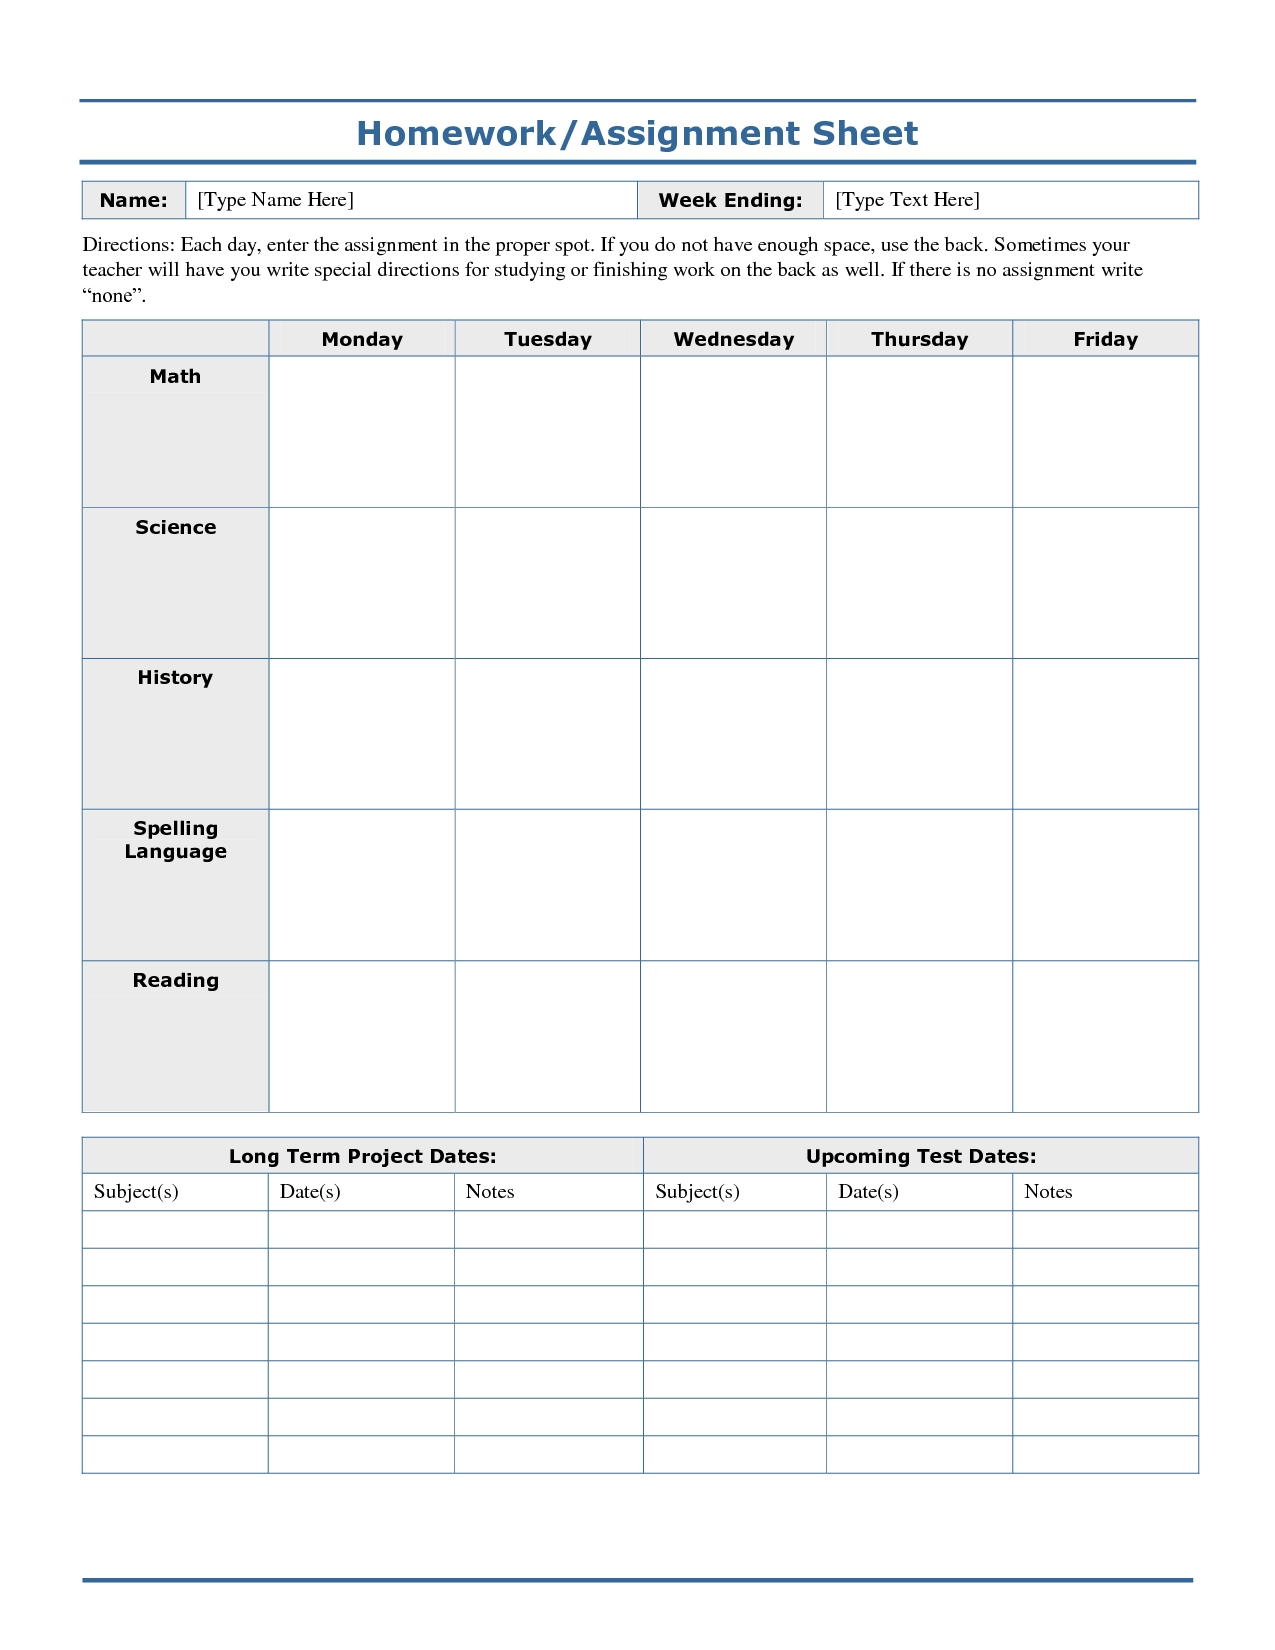 Weekly+Homework+Assignment+Sheet+Template (With Images  Weekly Assignment Log